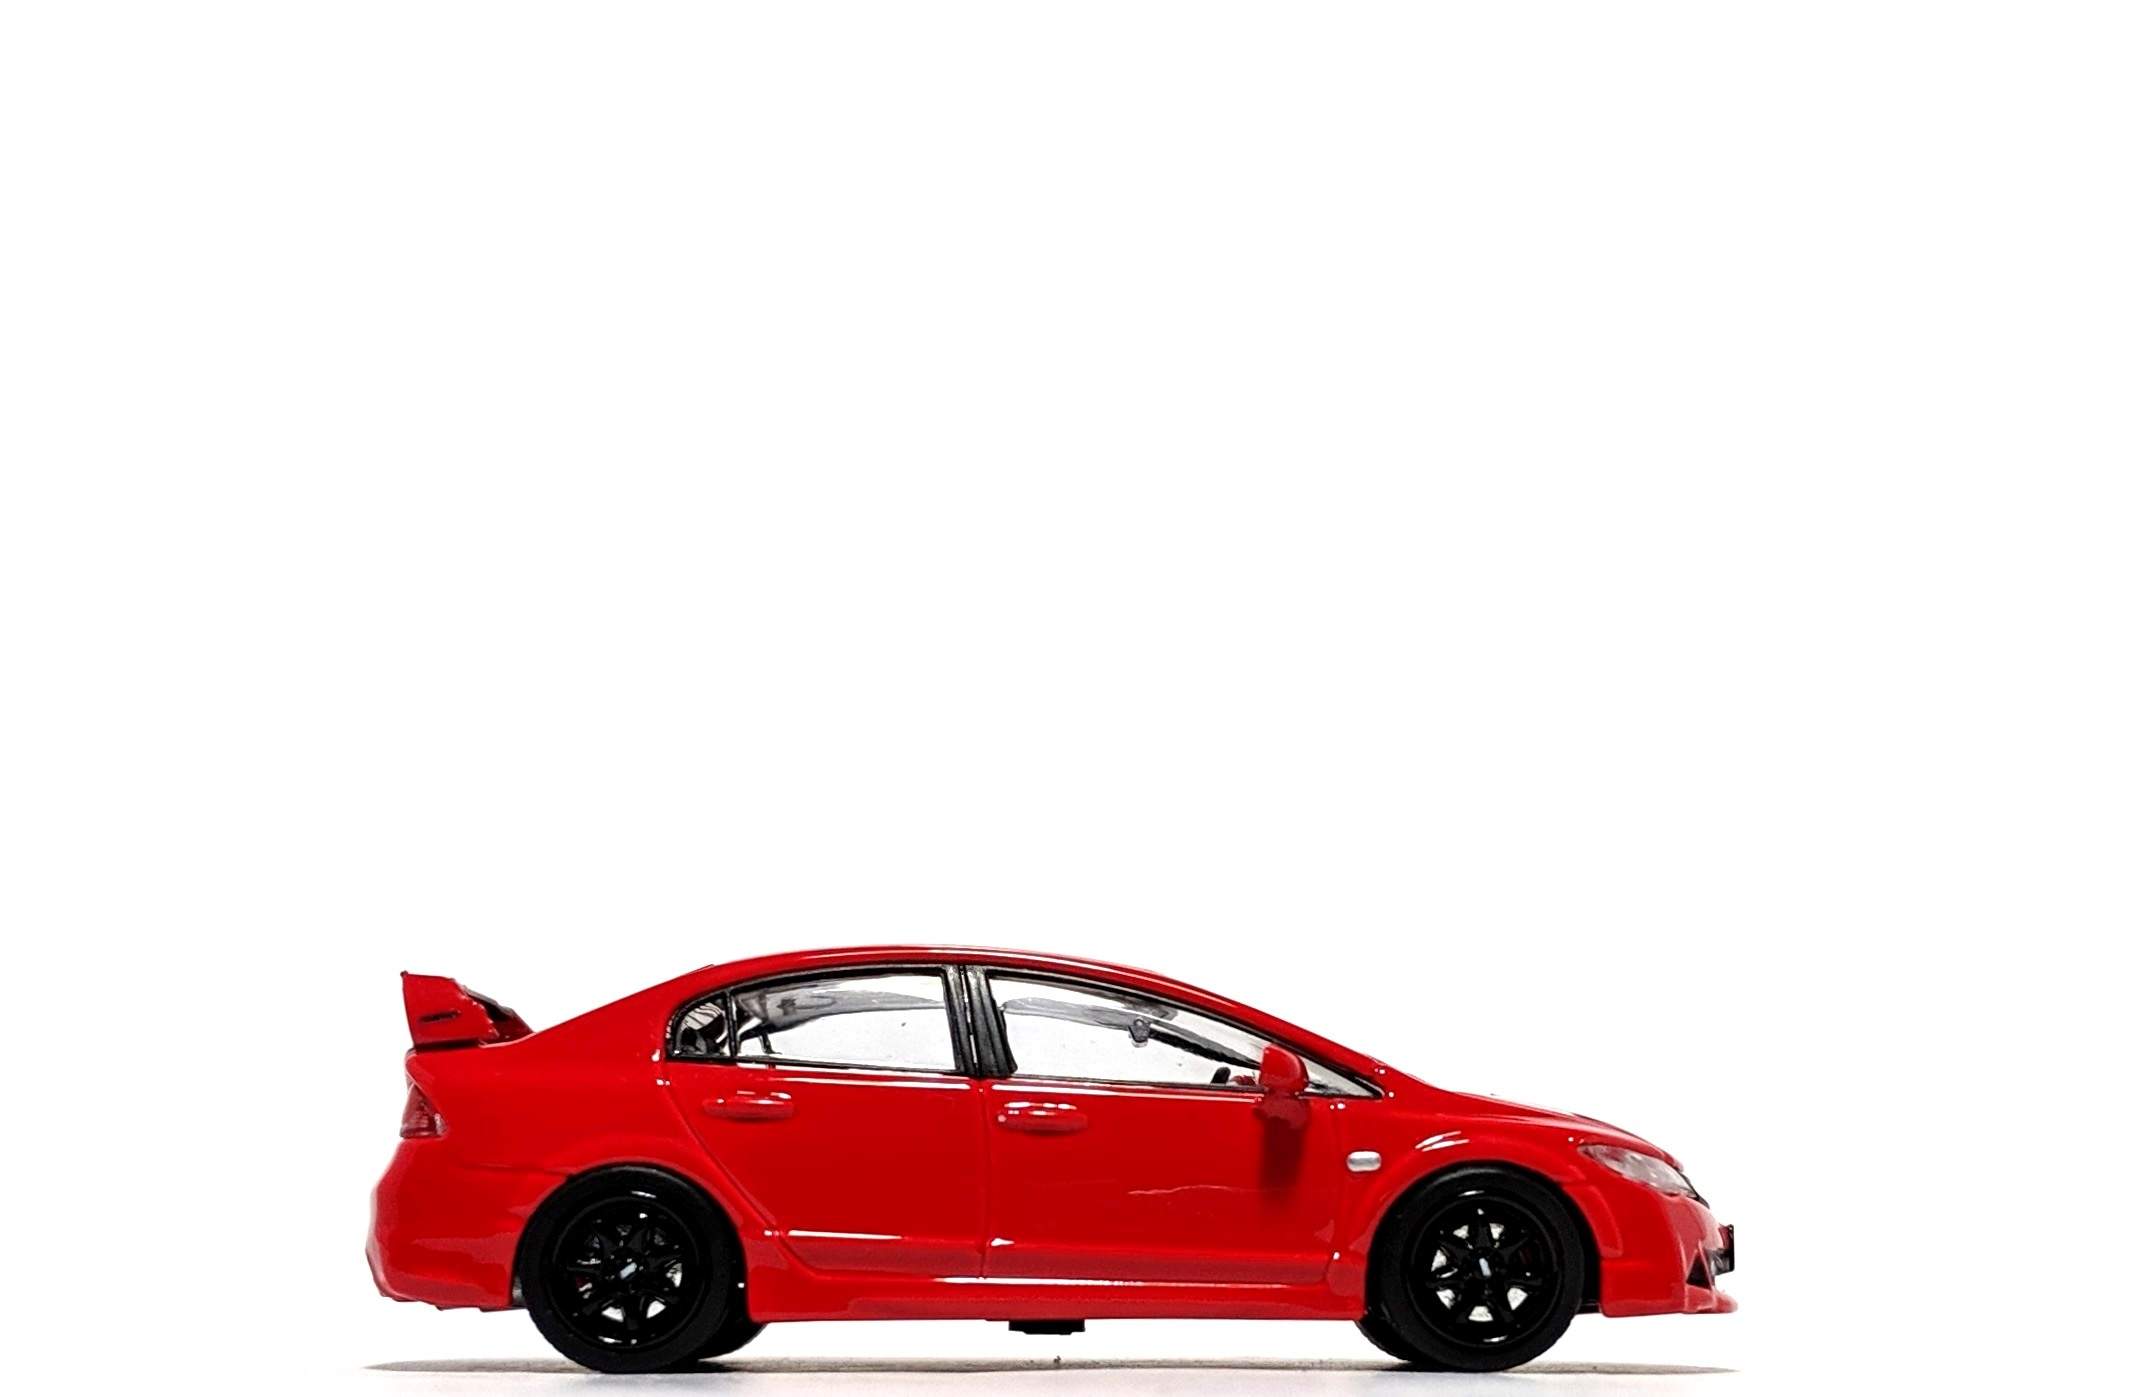 Honda Civic FD2 Mugen RR, by Inno64